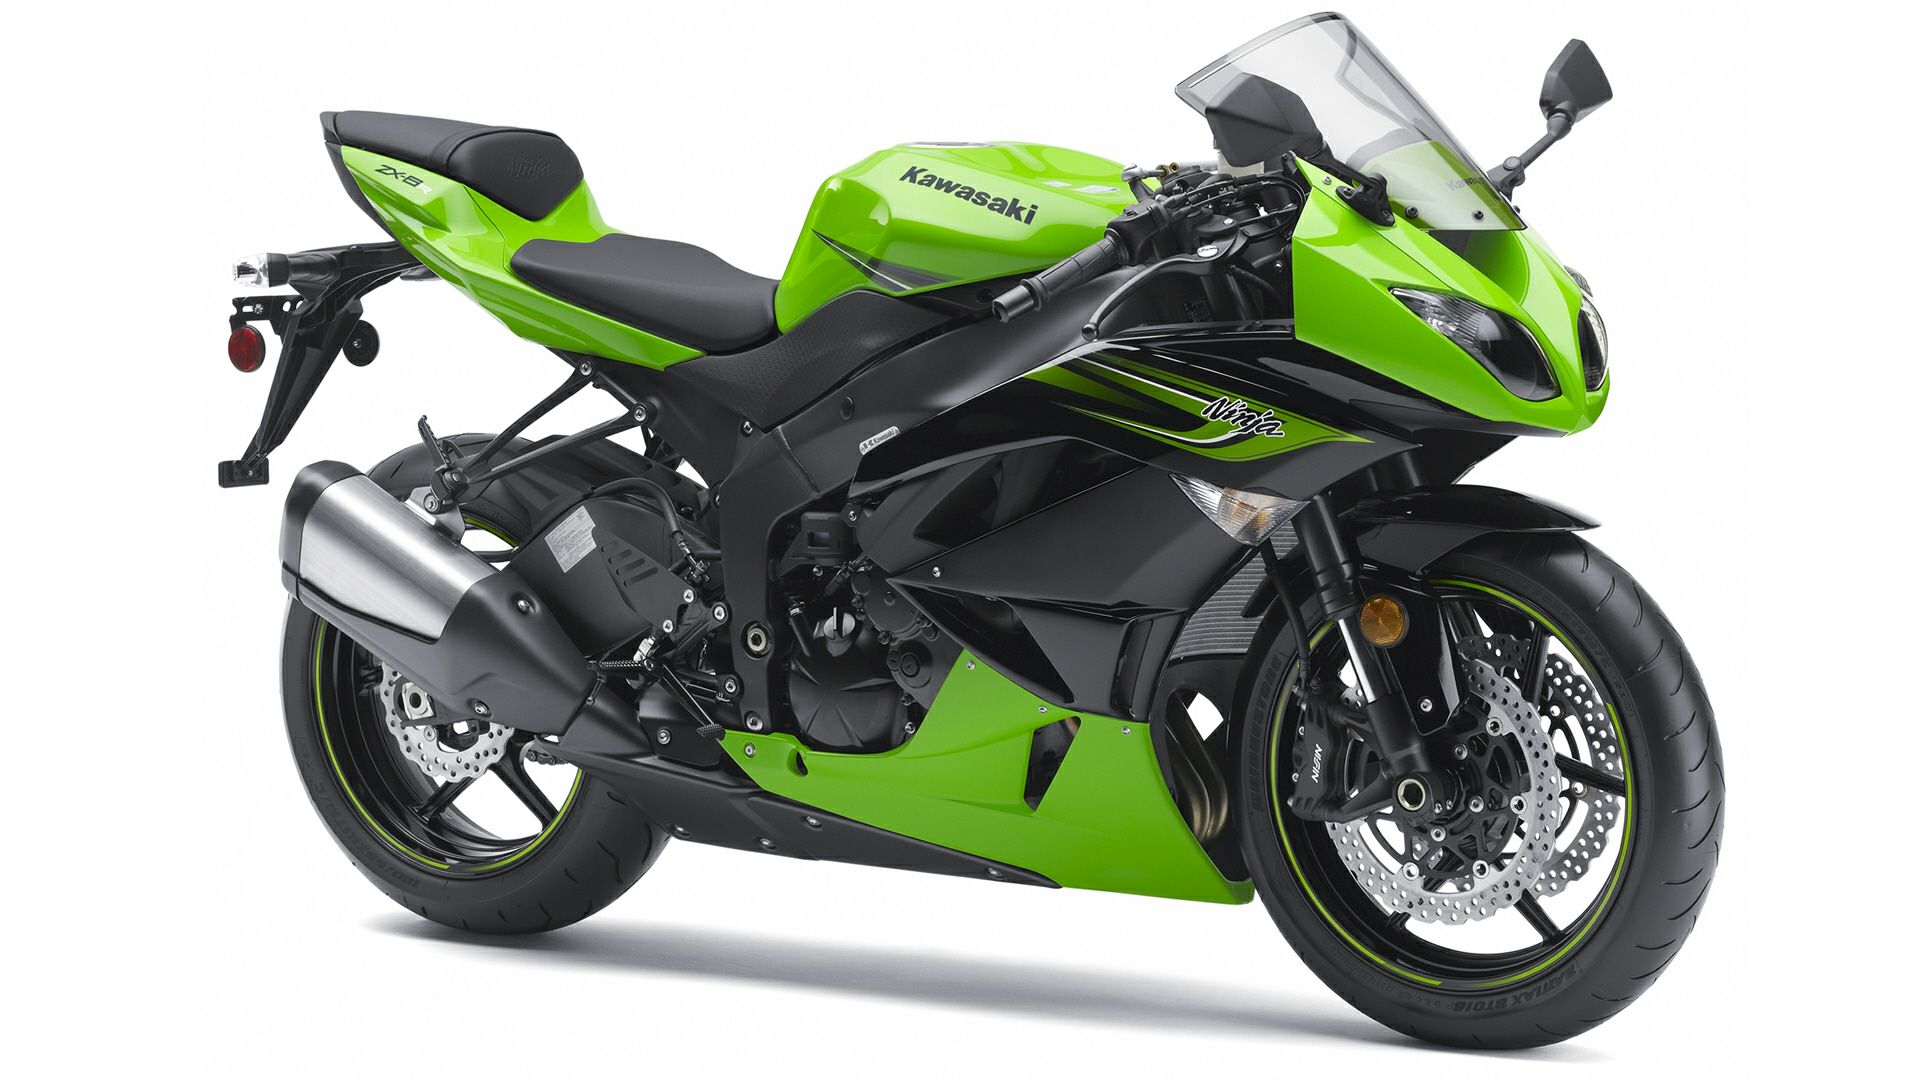 Kawasaki Ninja Bike Hd 1080p Wallpaper Car Wallpapers With